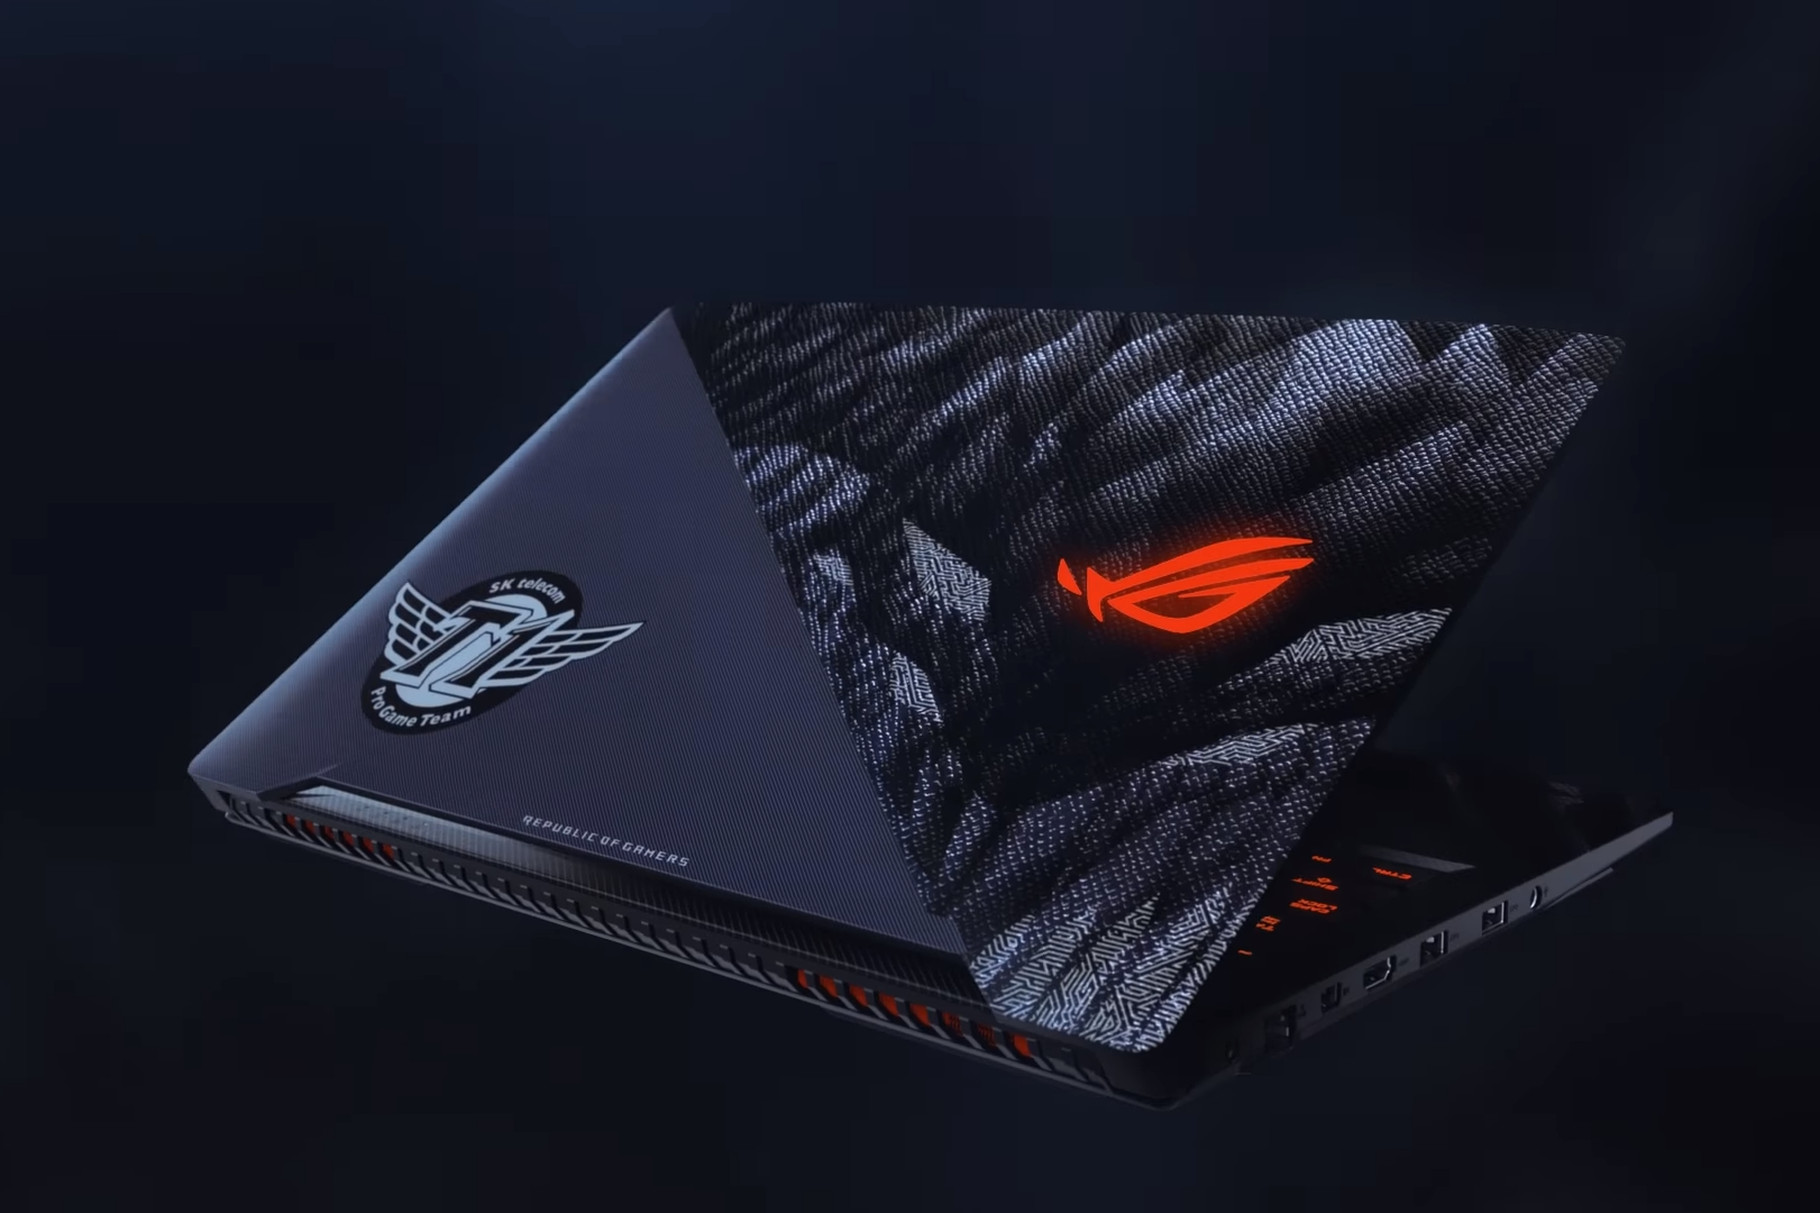 skt t1 laptop.0.png - Biggest team of League of Legend partners with ASUS